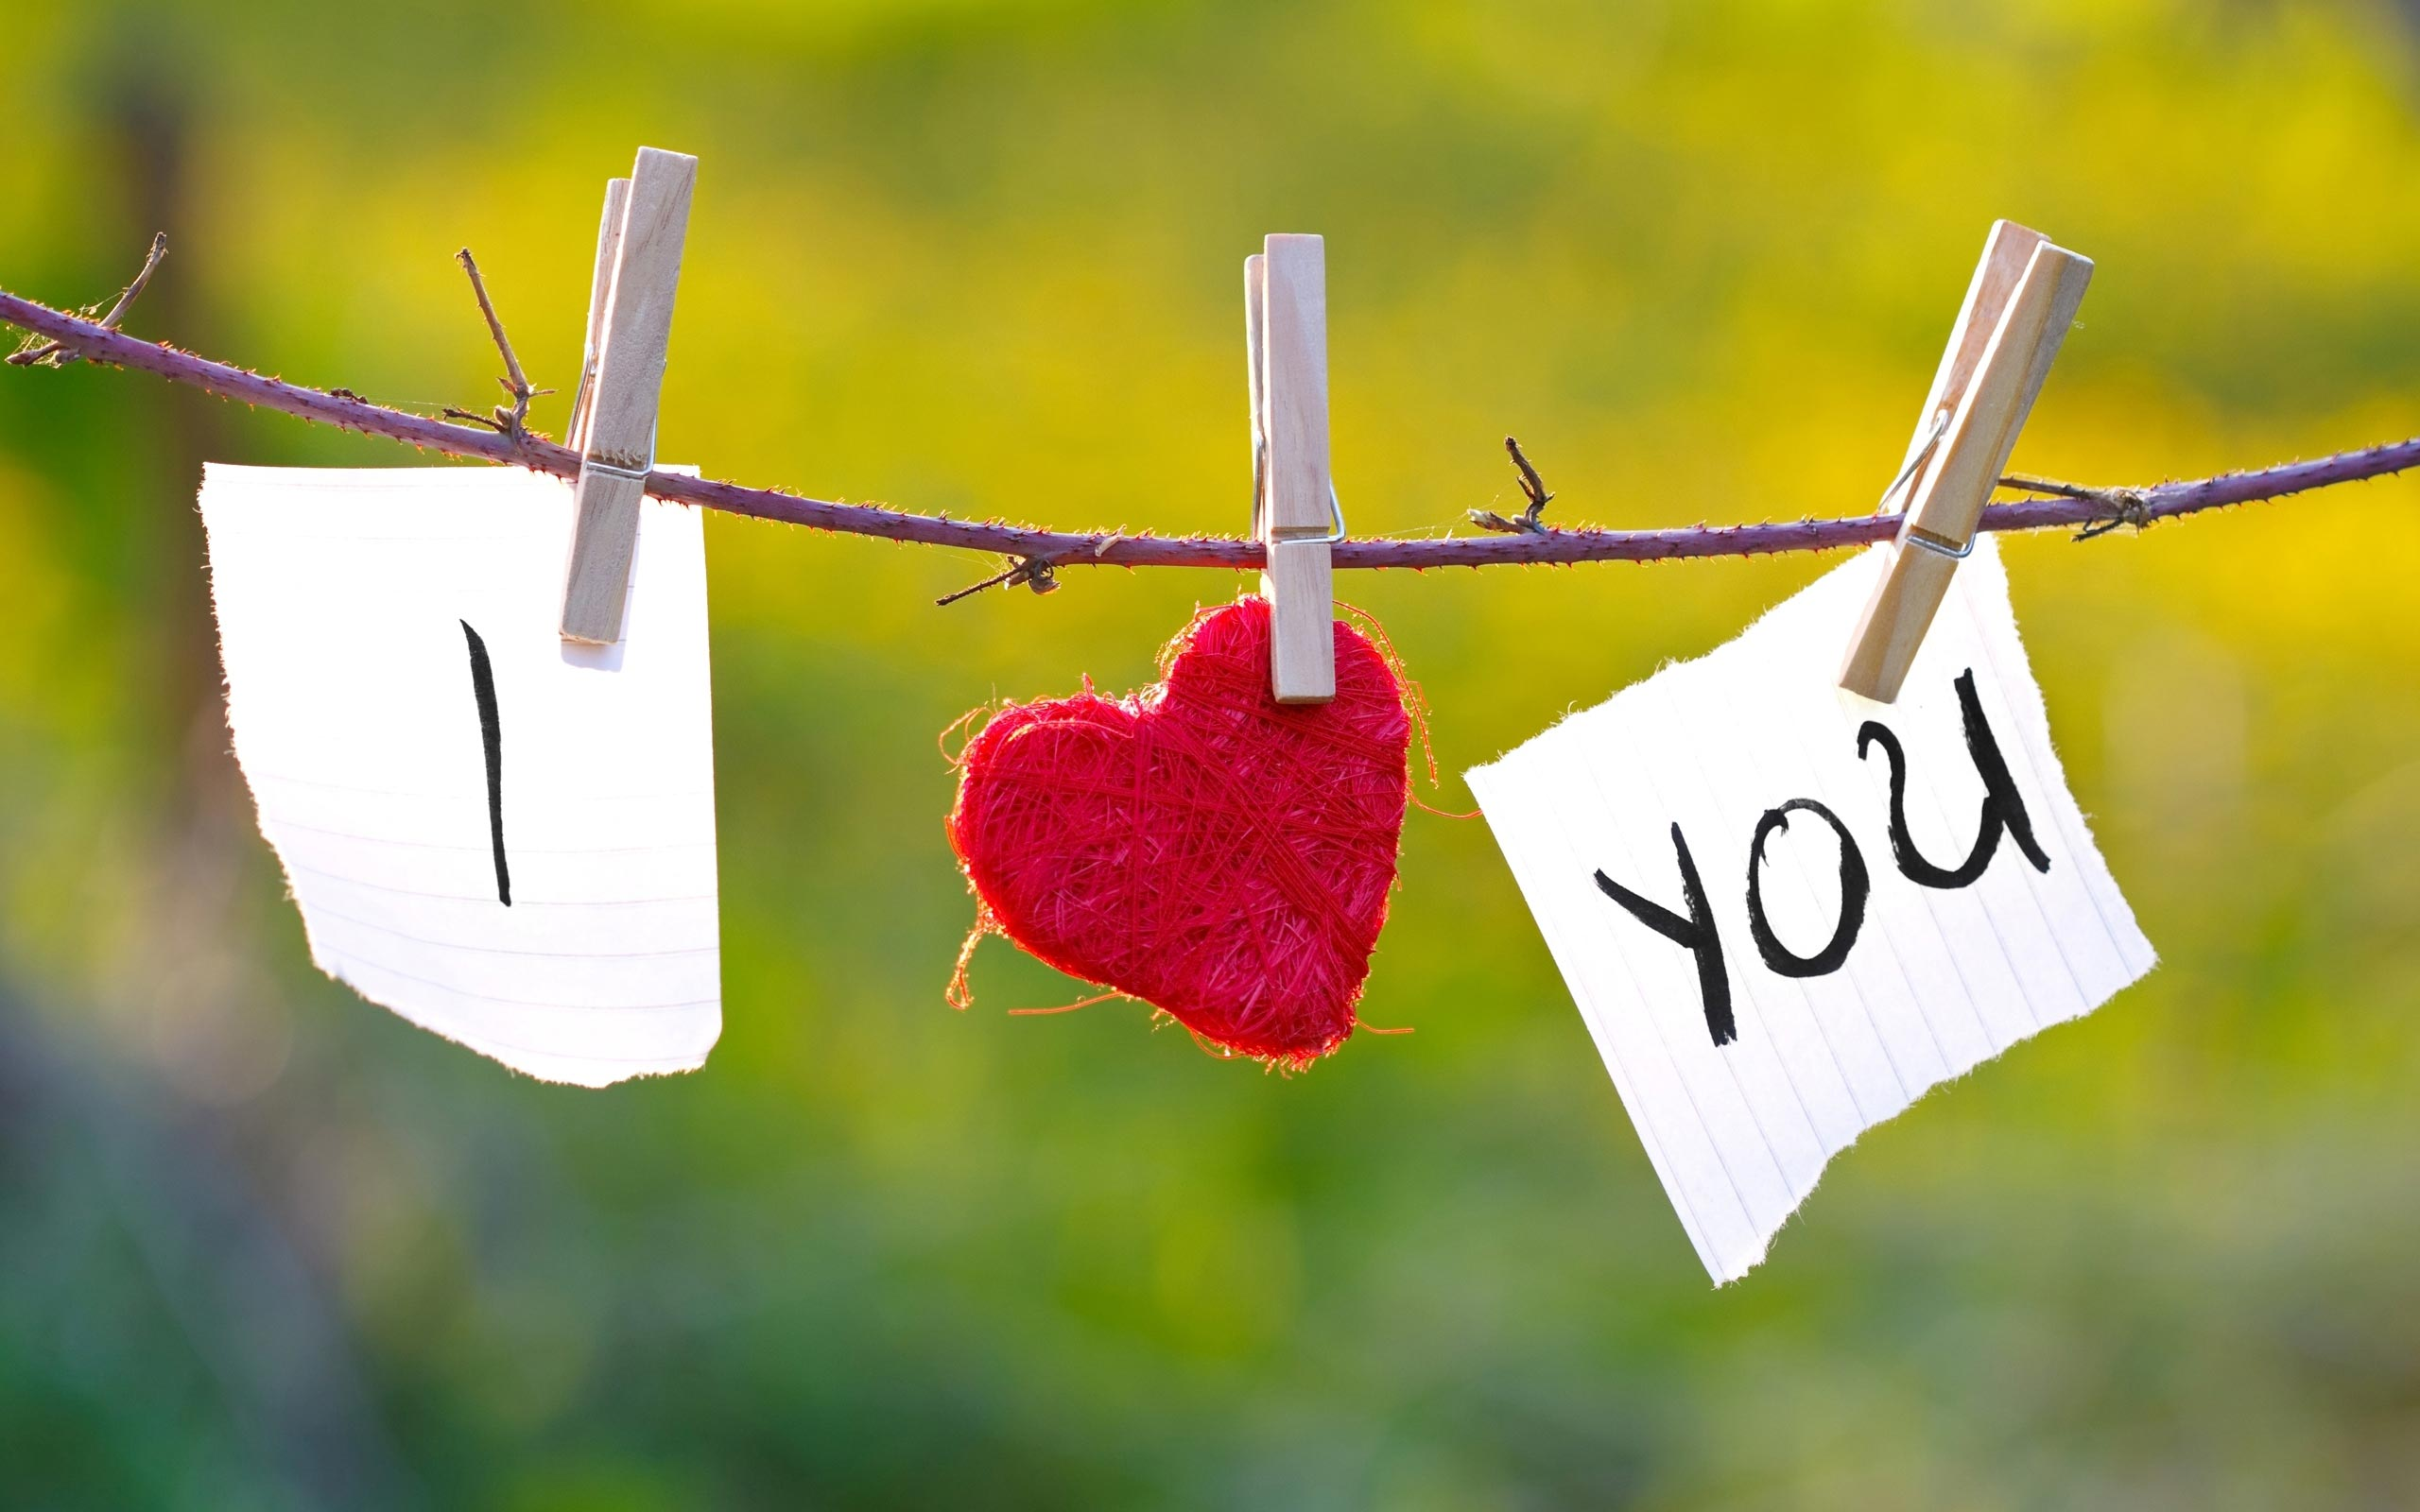 Miss You Wallpapers 8108 Hd Wallpapers in Love   Imagescicom 2560x1600